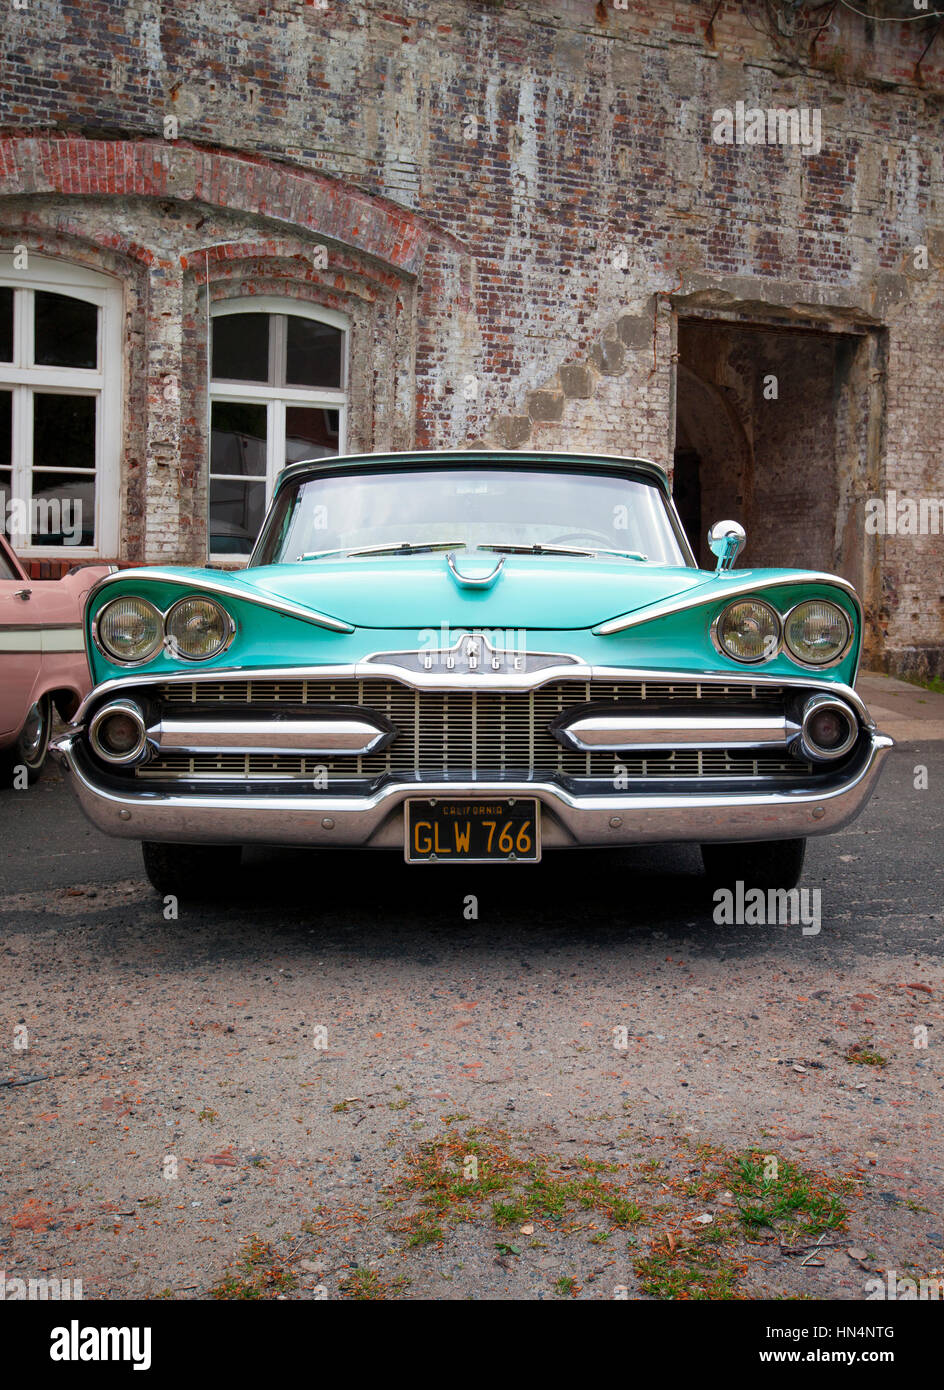 Stade, Germany - may 2, 2015: 1959 Dodge custom Royal at MOPAR Spring Fling annual meeting for vintage automobiles - Stock Image